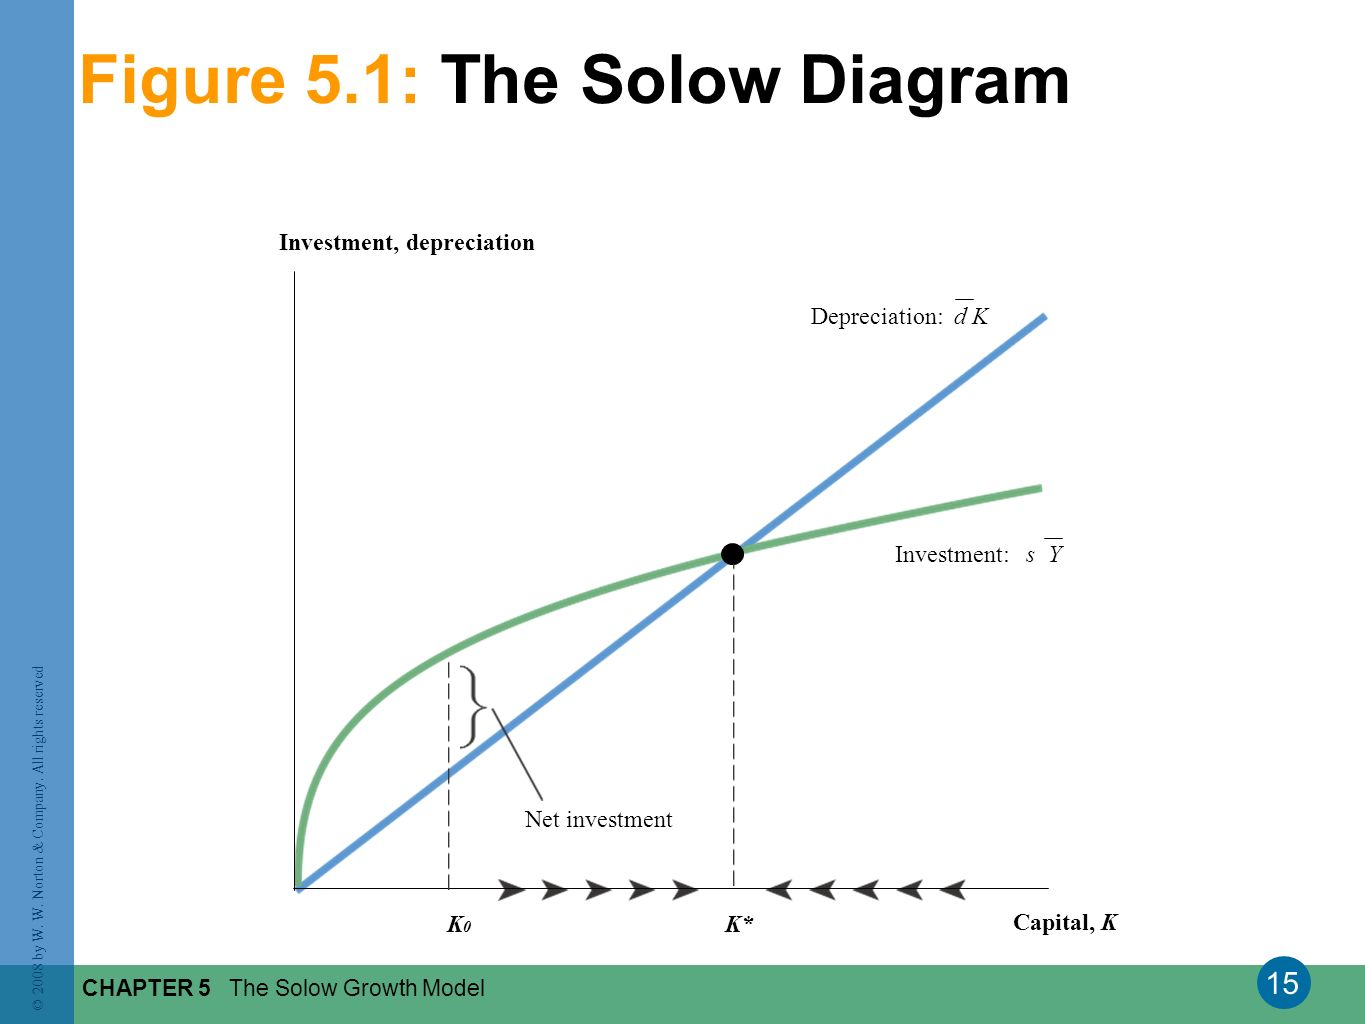 Figure 5.1: The Solow Diagram